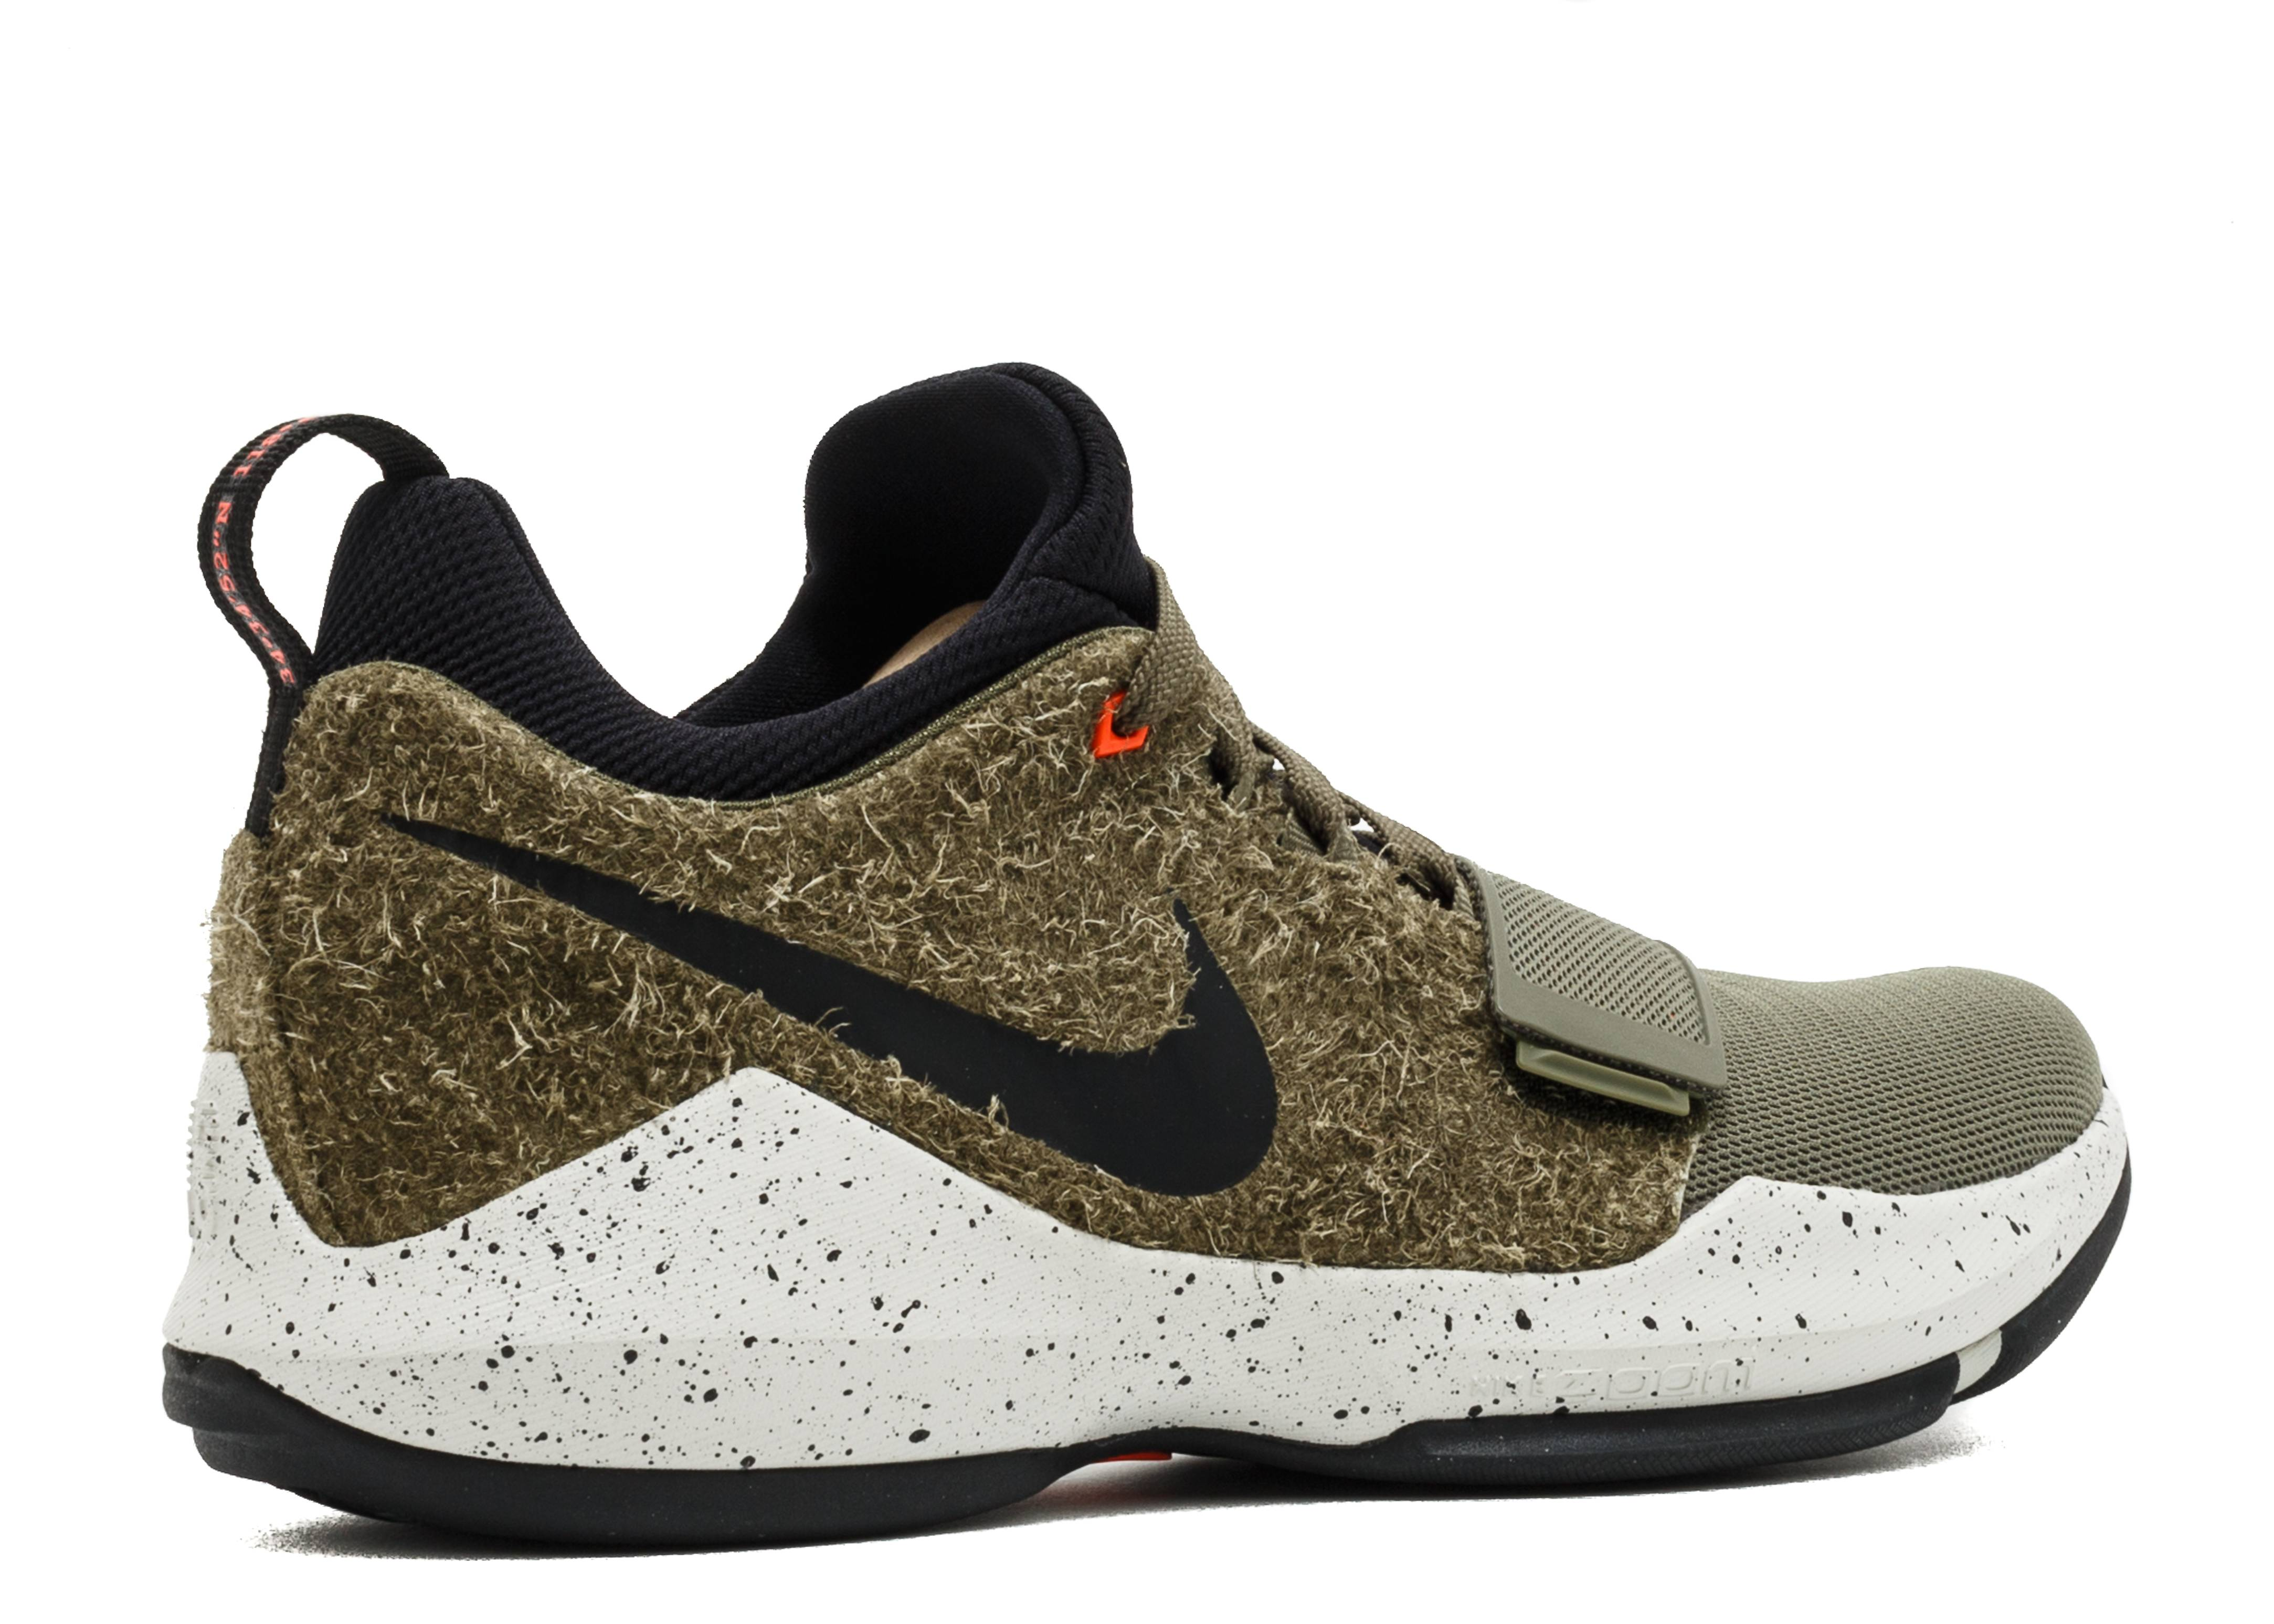 6a24f81974 Pg 1 Elements - Nike - 911085 200 - medium olive/black | Flight Club